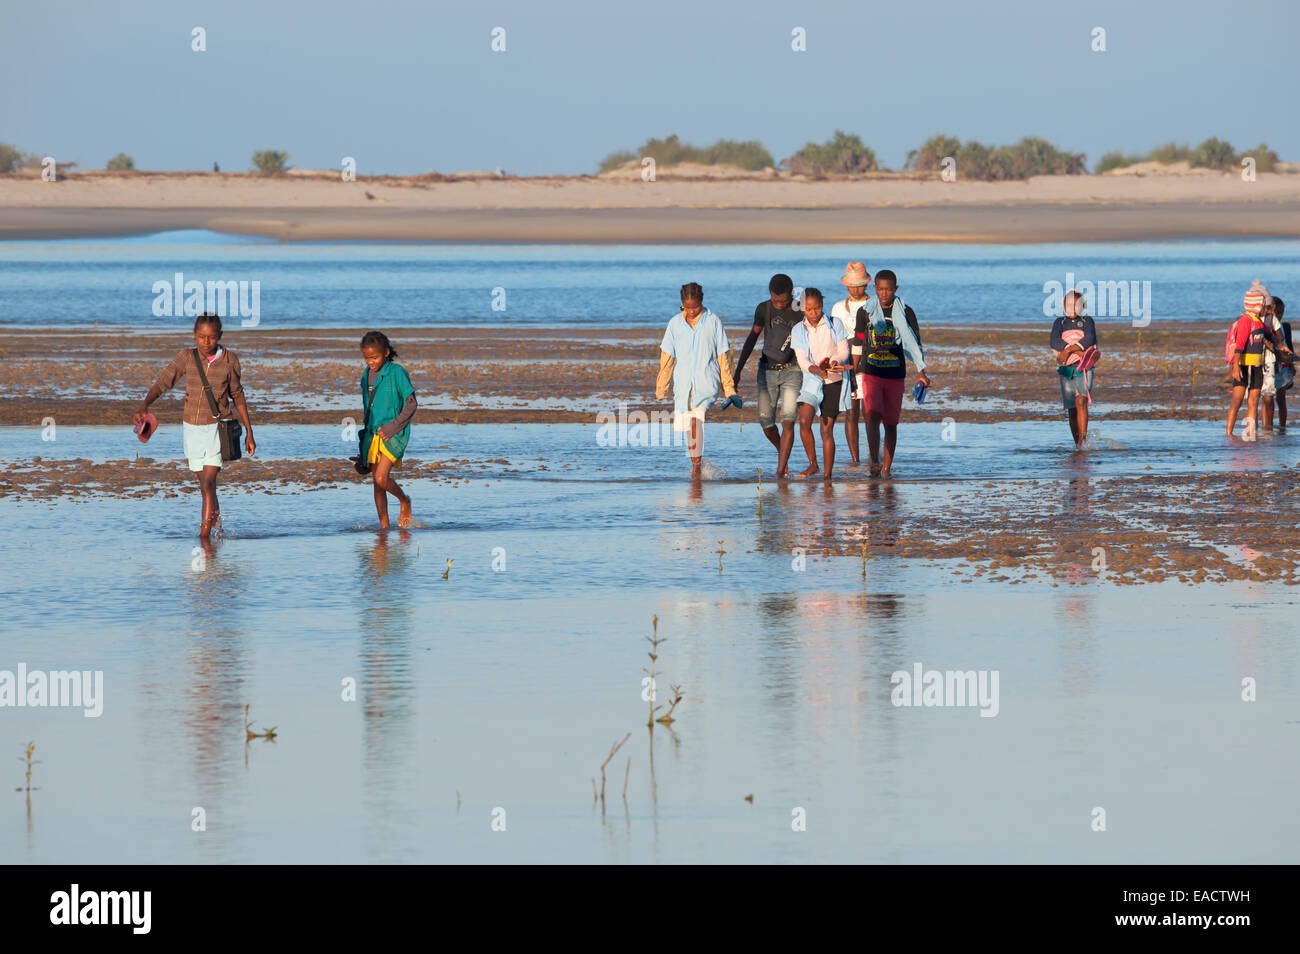 Malagasy people crossing the water, Morondava, Toliara province, Madagascar - Stock Image